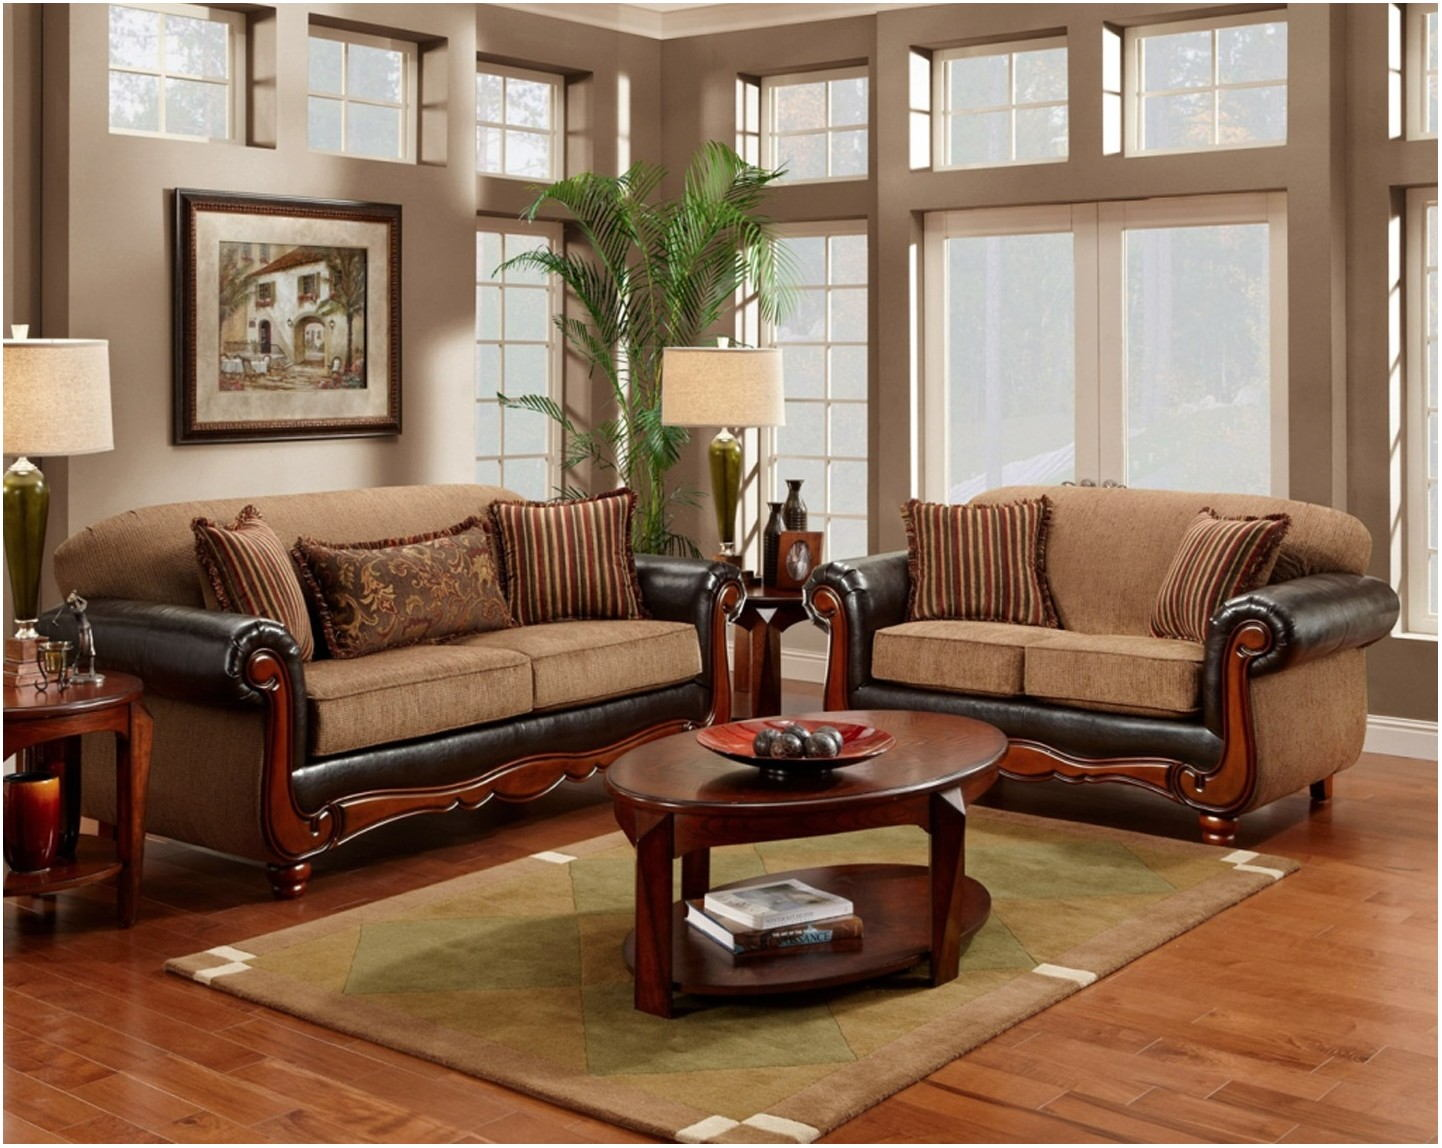 Suitable Colors To Paint Living Room